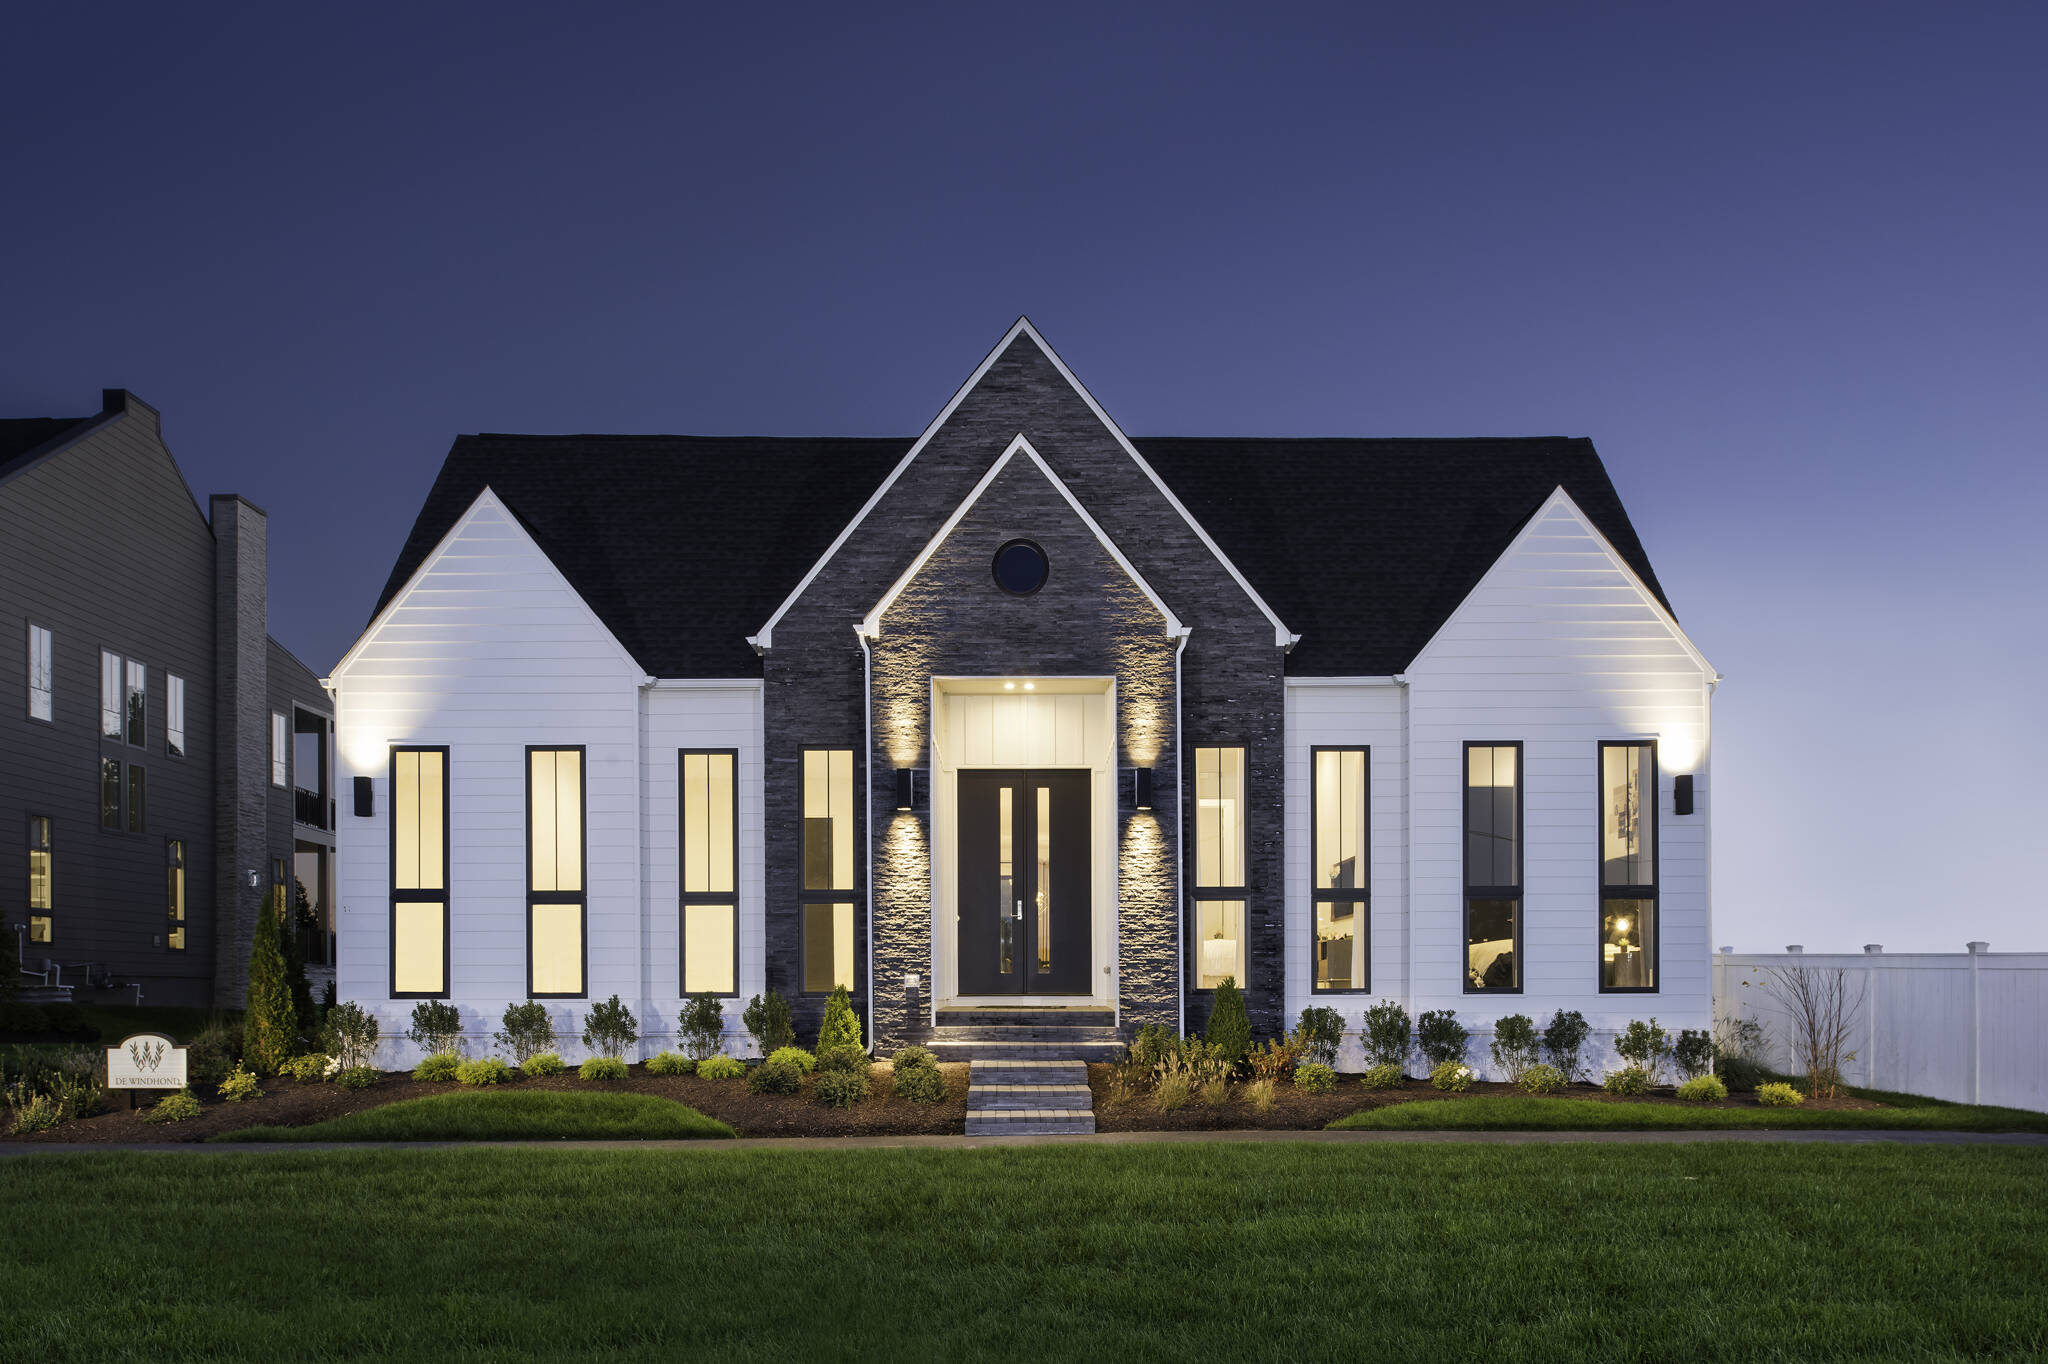 de windhond jts new homes at windmill series